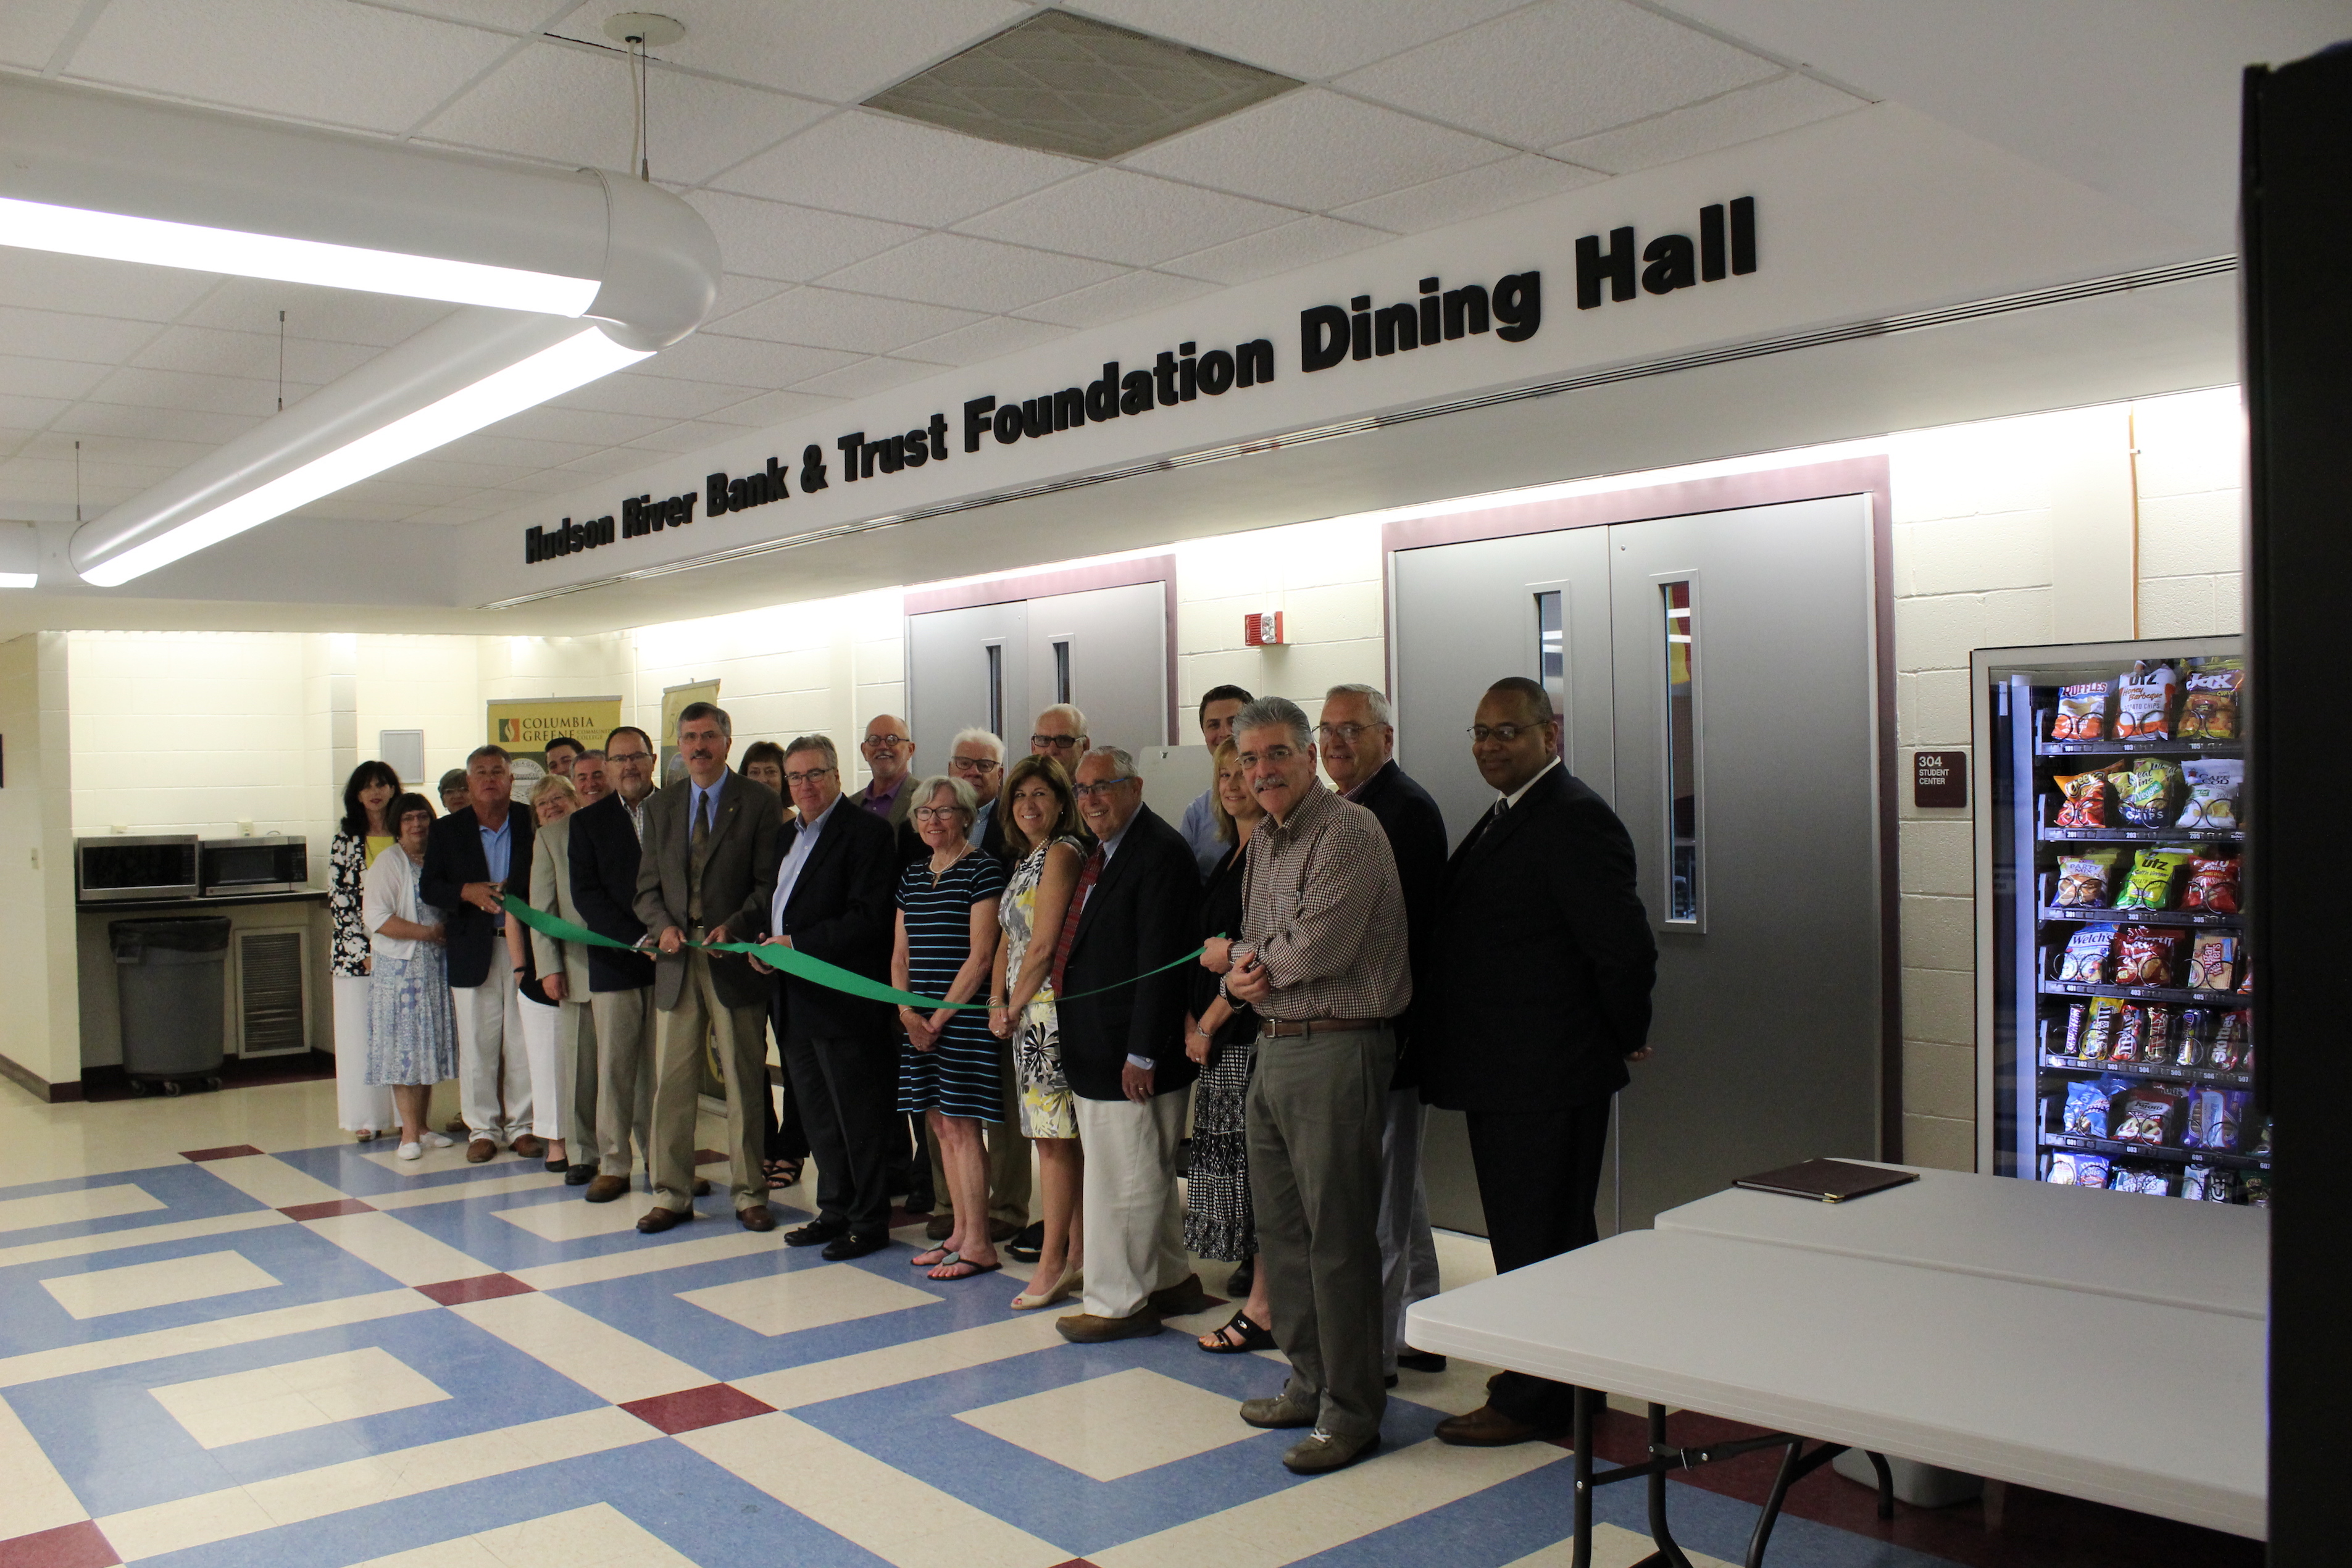 Ribbon cutting in front of newly named dining hall